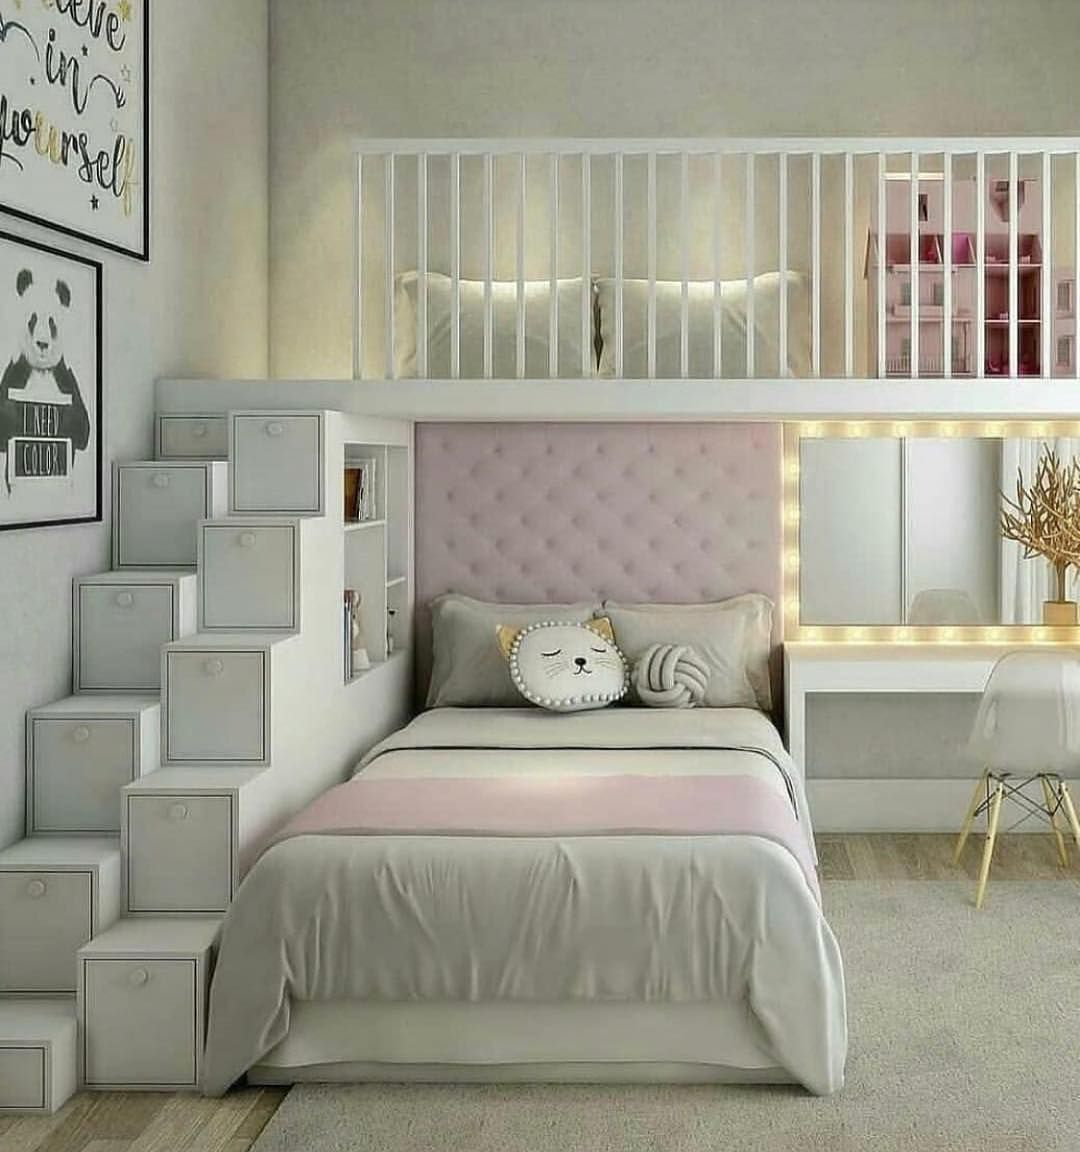 1, 2, 3, 4, 5 OR 6  Choose Your Fave Room! Tag Your Friends … is part of Girl bedroom designs - credit 1, 2, 3, 4, 5 OR 6  💕💕💕 Choose Your Fave Room! 👌 Tag Your Friends ❤️ 🔻 @curlwiz